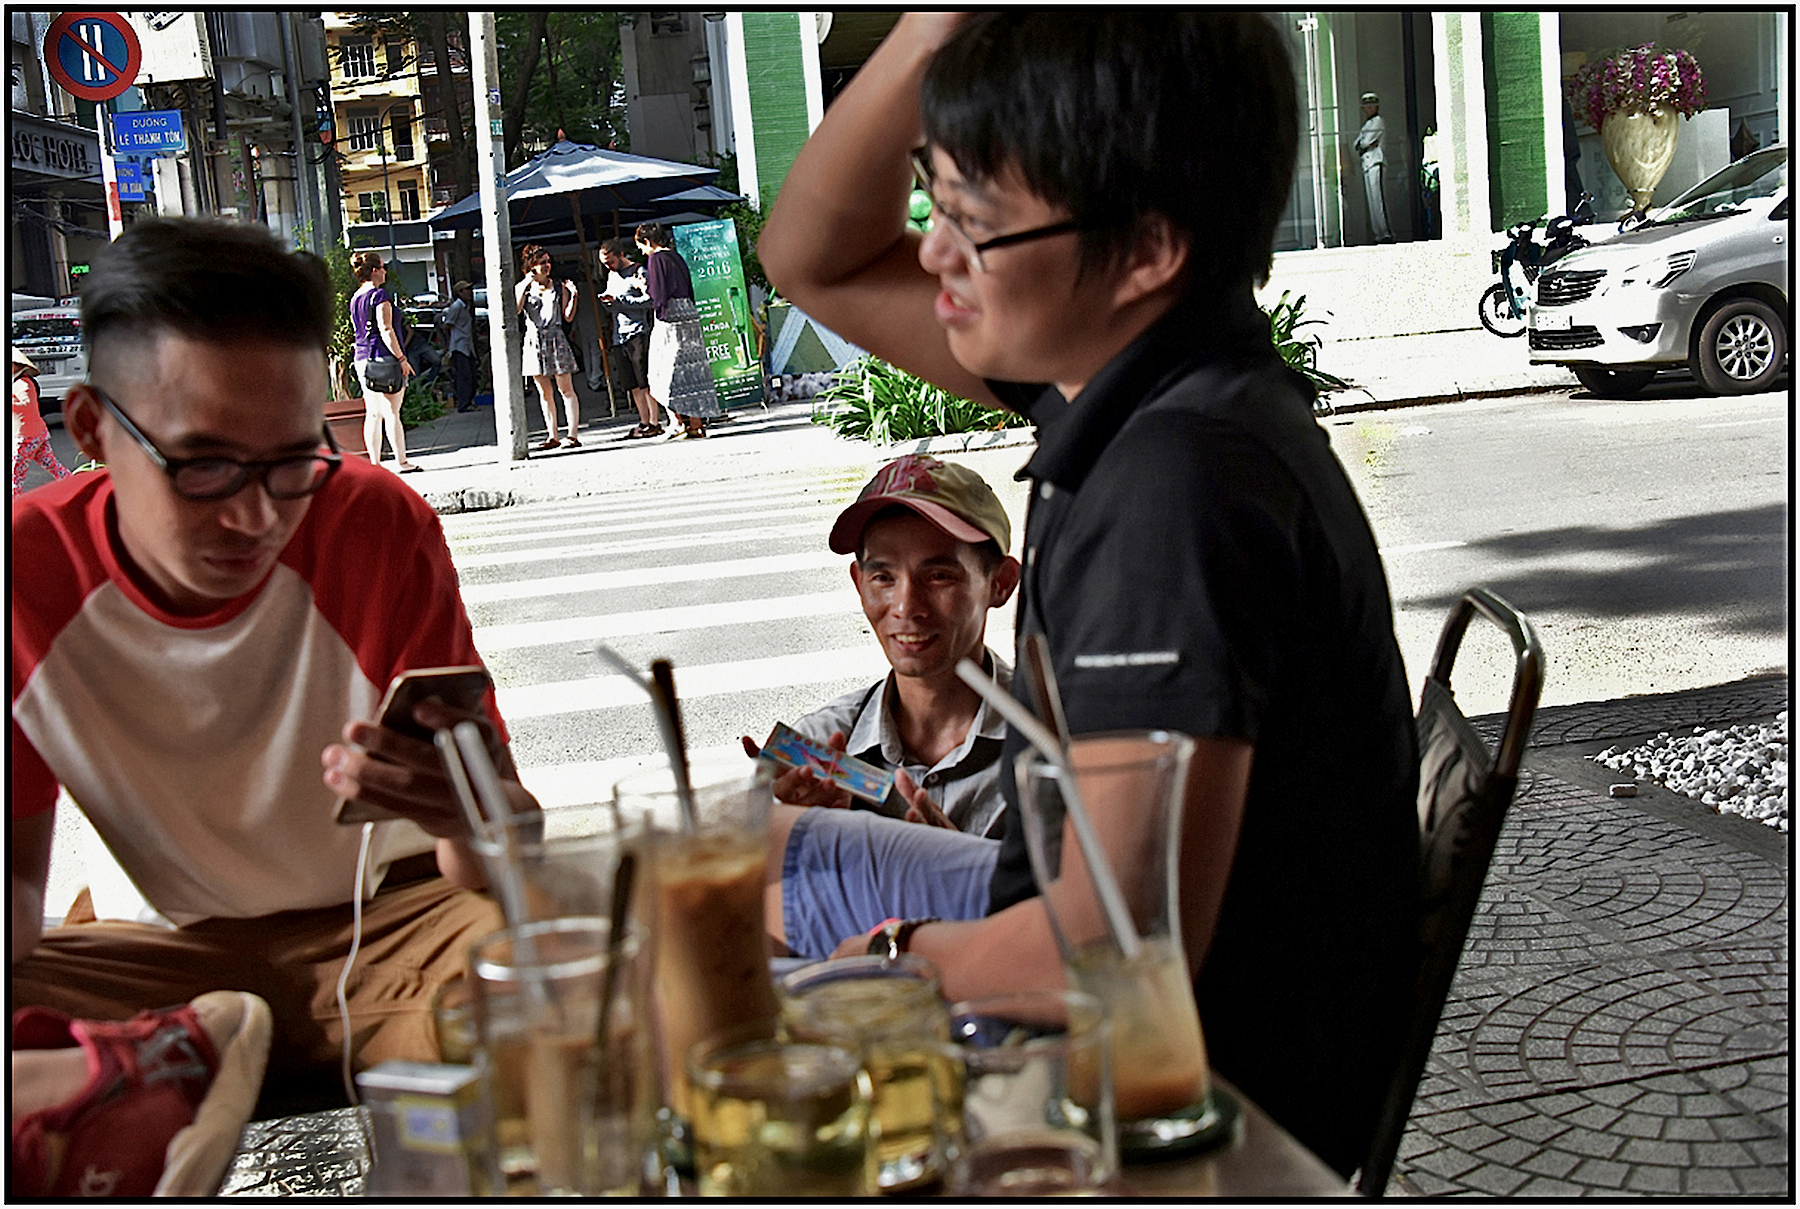 Four teenage boys at a Coffee Cafe as a legless man attempts to sell lottery tickets. Saigon/HCMC, Jan. 2016. #0155